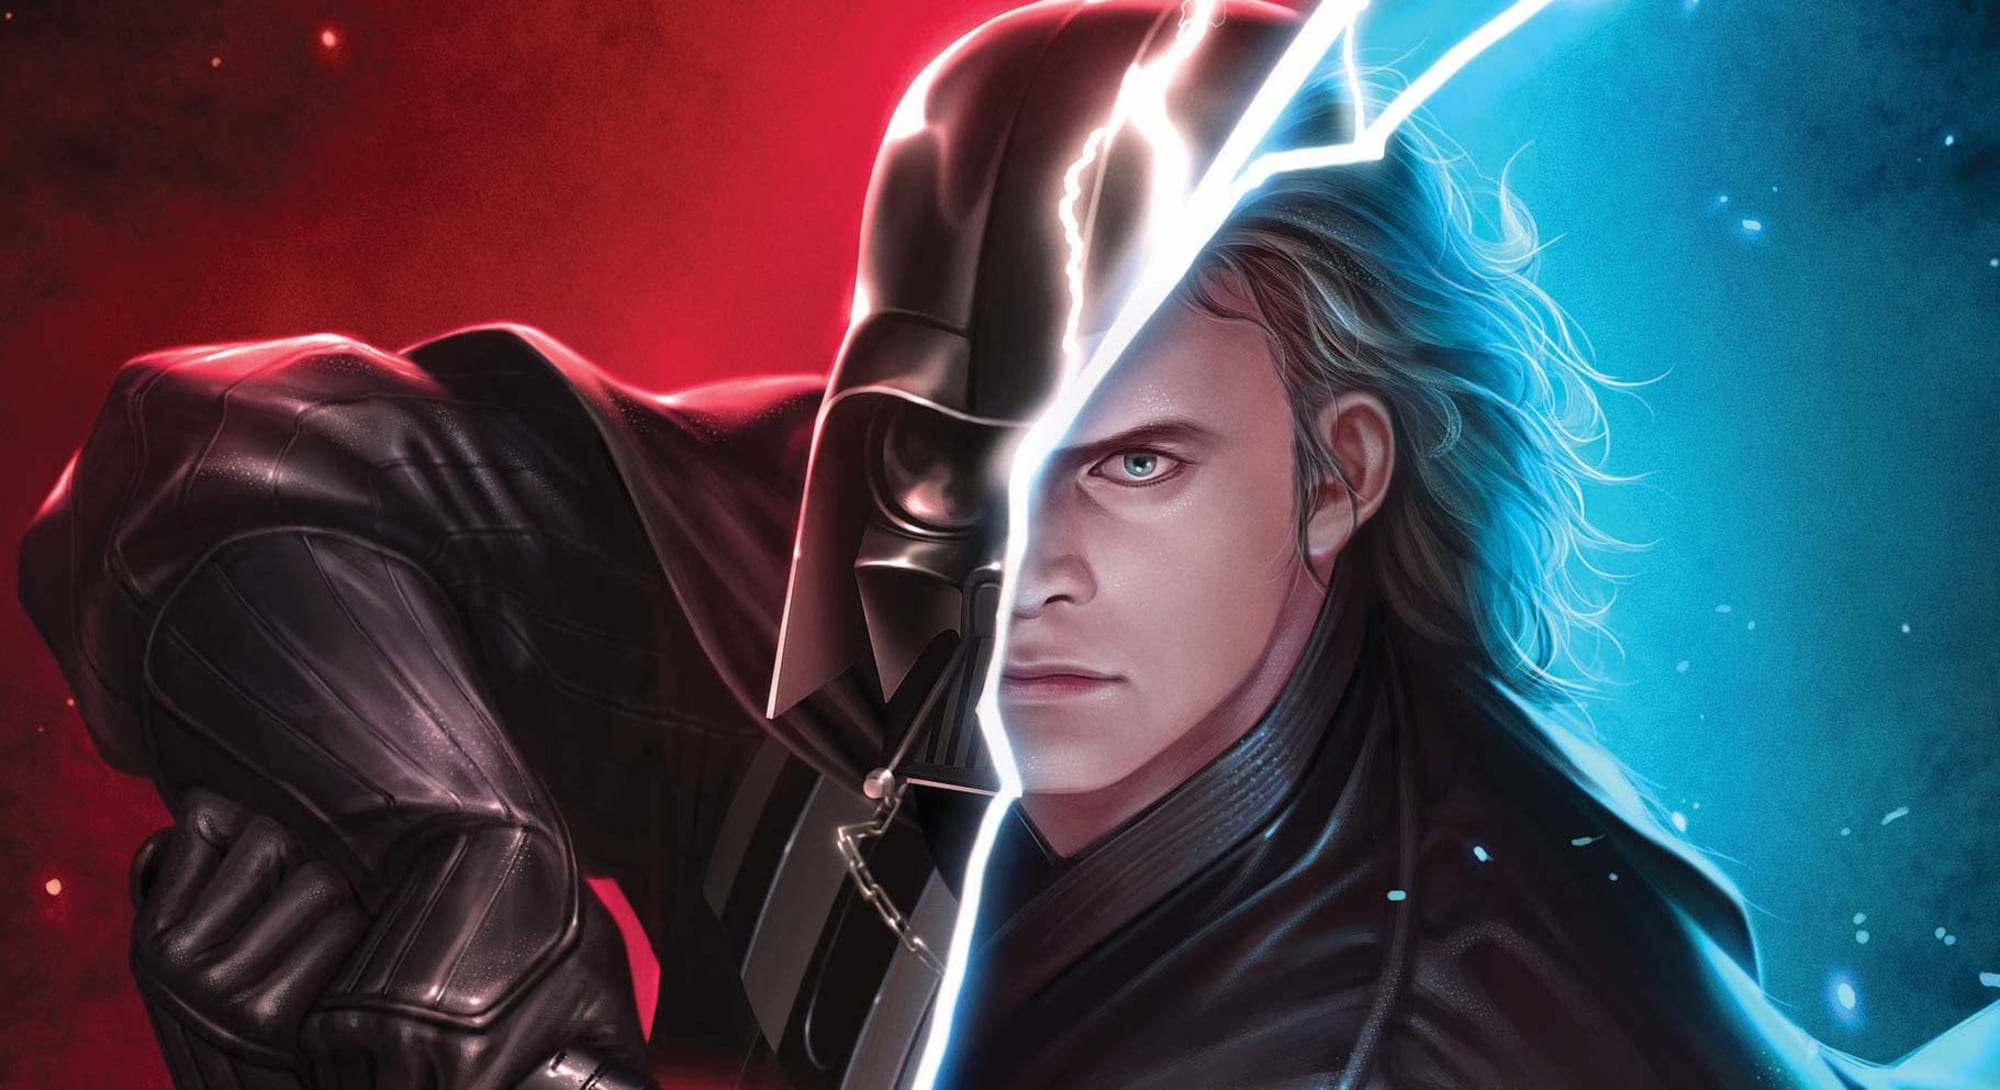 Star Wars Darth Vader 5 Is The Beginning Of Vader S Journey To The Light